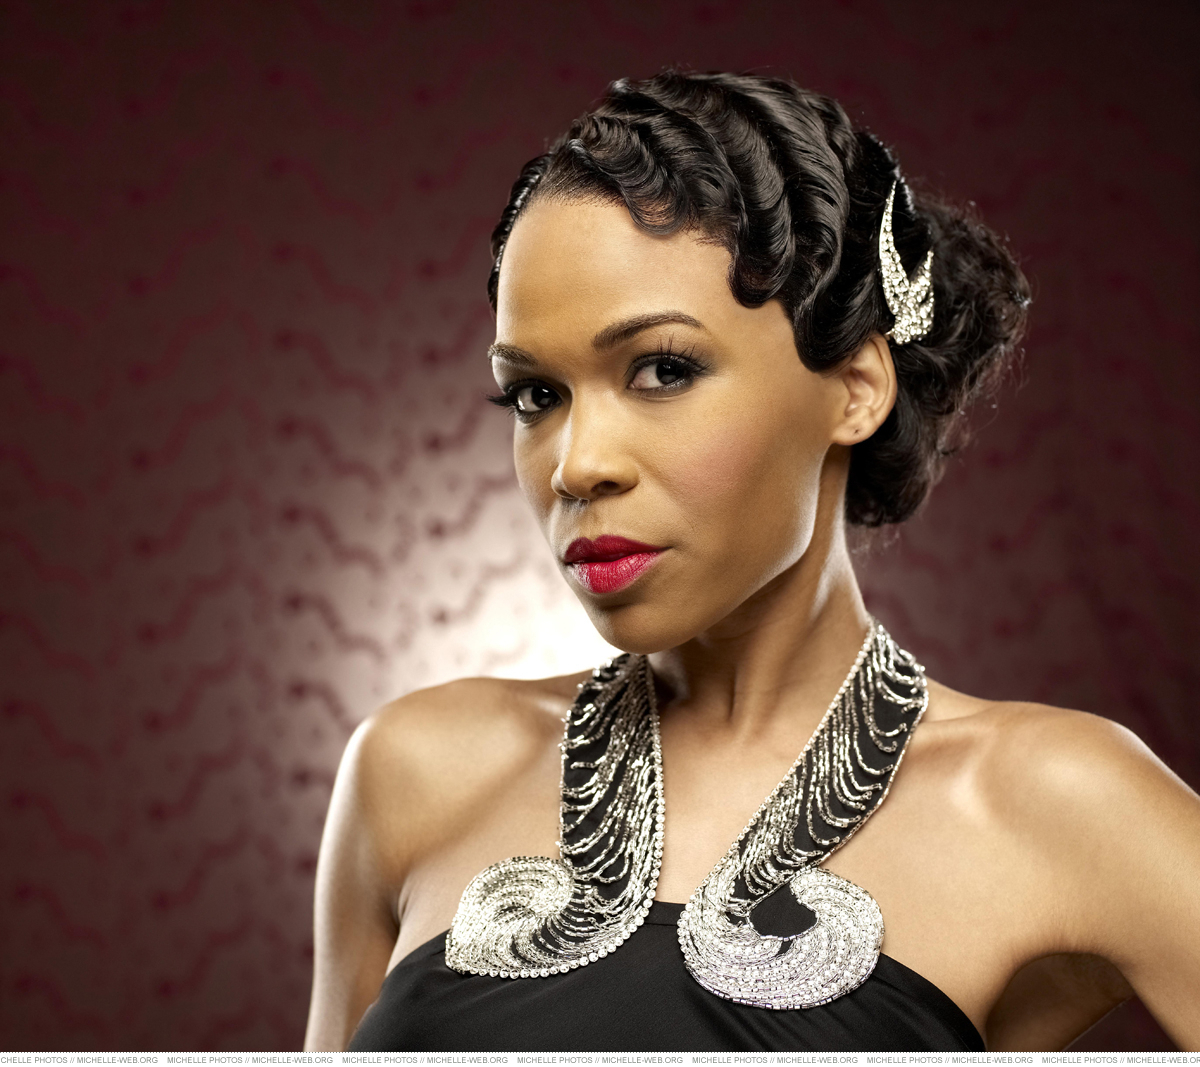 Michelle Williams (singer) images Michelle HD wallpaper and background ...